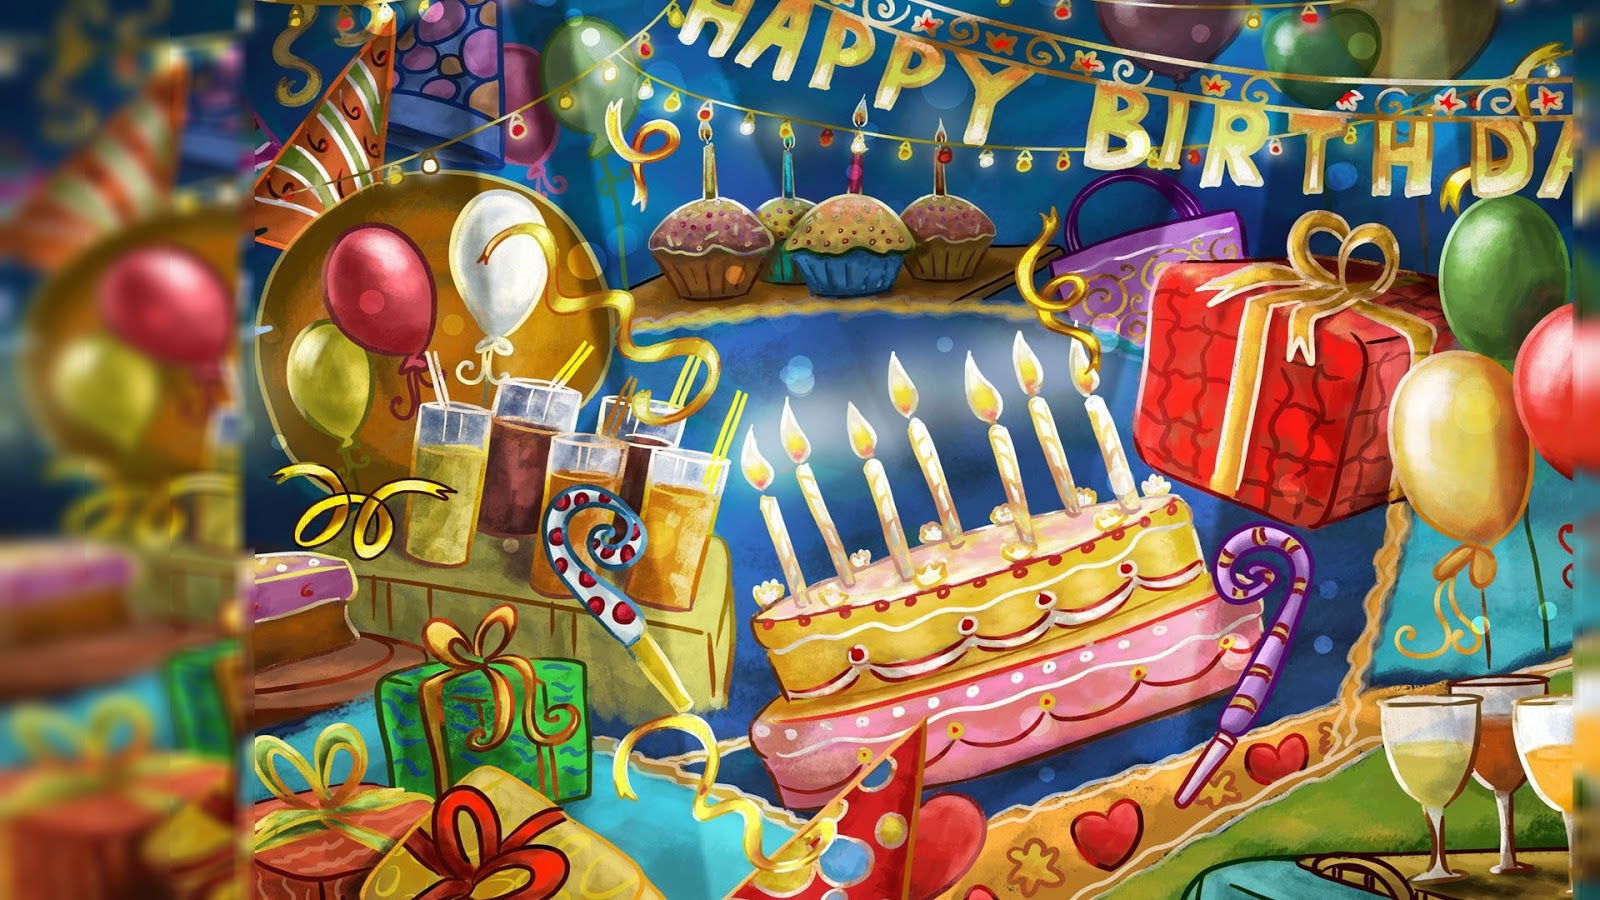 birthday wallpaper for facebook ; happy-birthday-to-me-facebook-cover-01